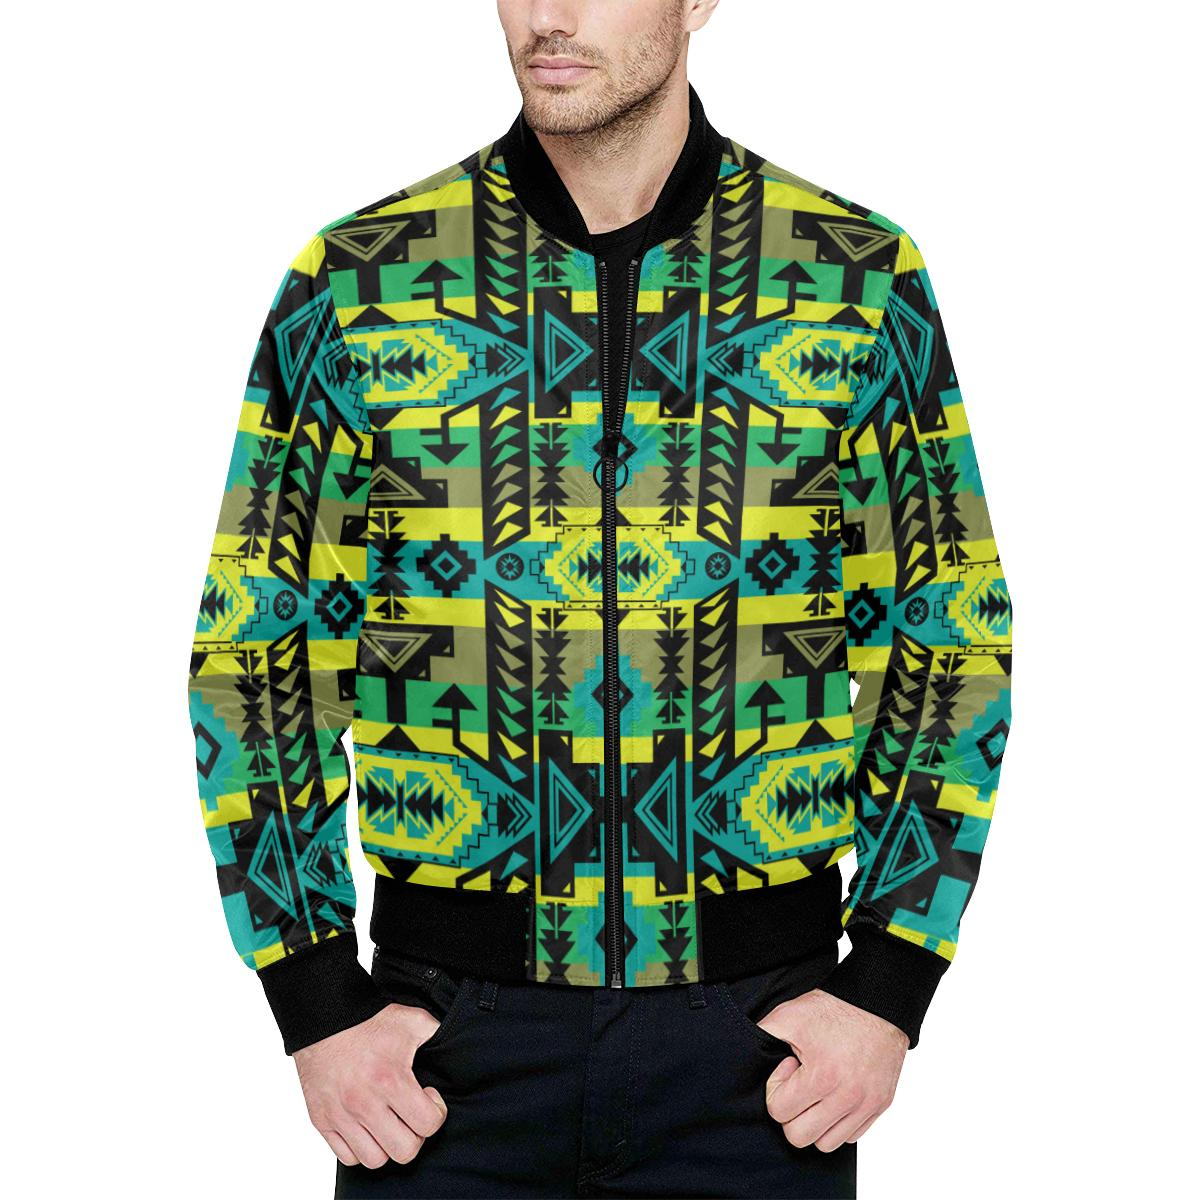 Chiefs Mountain Unisex Heavy Bomber Jacket with Quilted Lining All Over Print Quilted Jacket for Men (H33) e-joyer